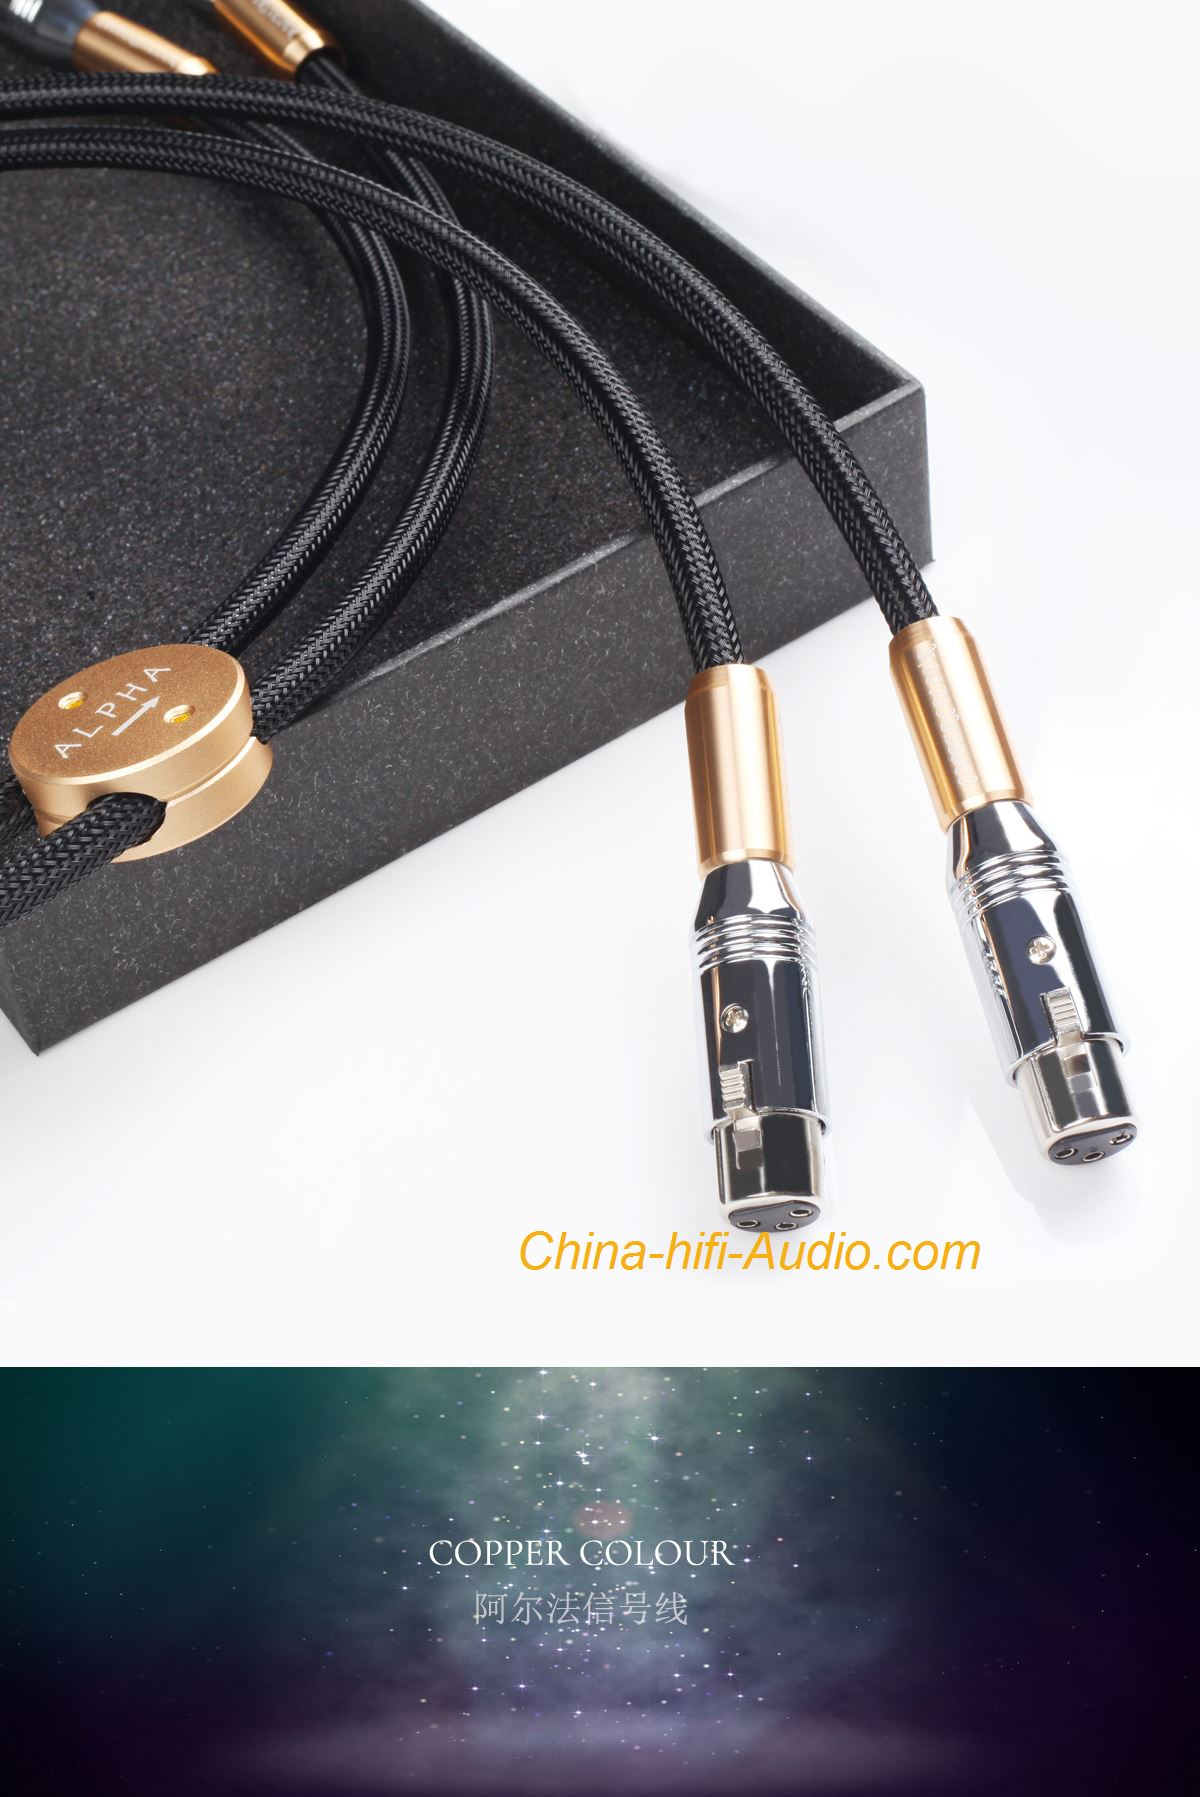 Meixing Mingdabewitchbada Amplifiers Cd Playerpower Amp Preamp Copper Colour Alpha Audiophile Cable Cc Xlr Plug Audio Interconnect Declaration